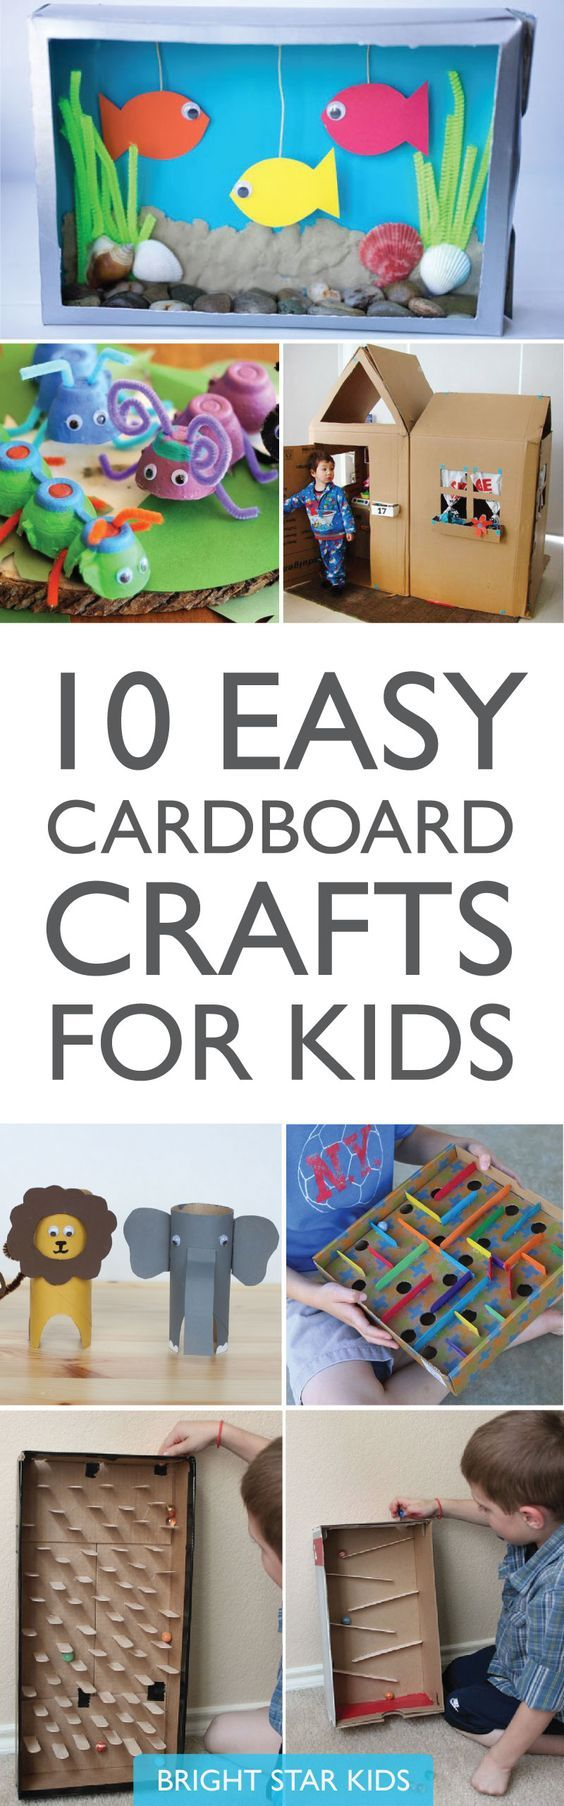 10 Easy Cardboard Crafts For Kids // Holiday Boredom Busters // Kids Craft Activities